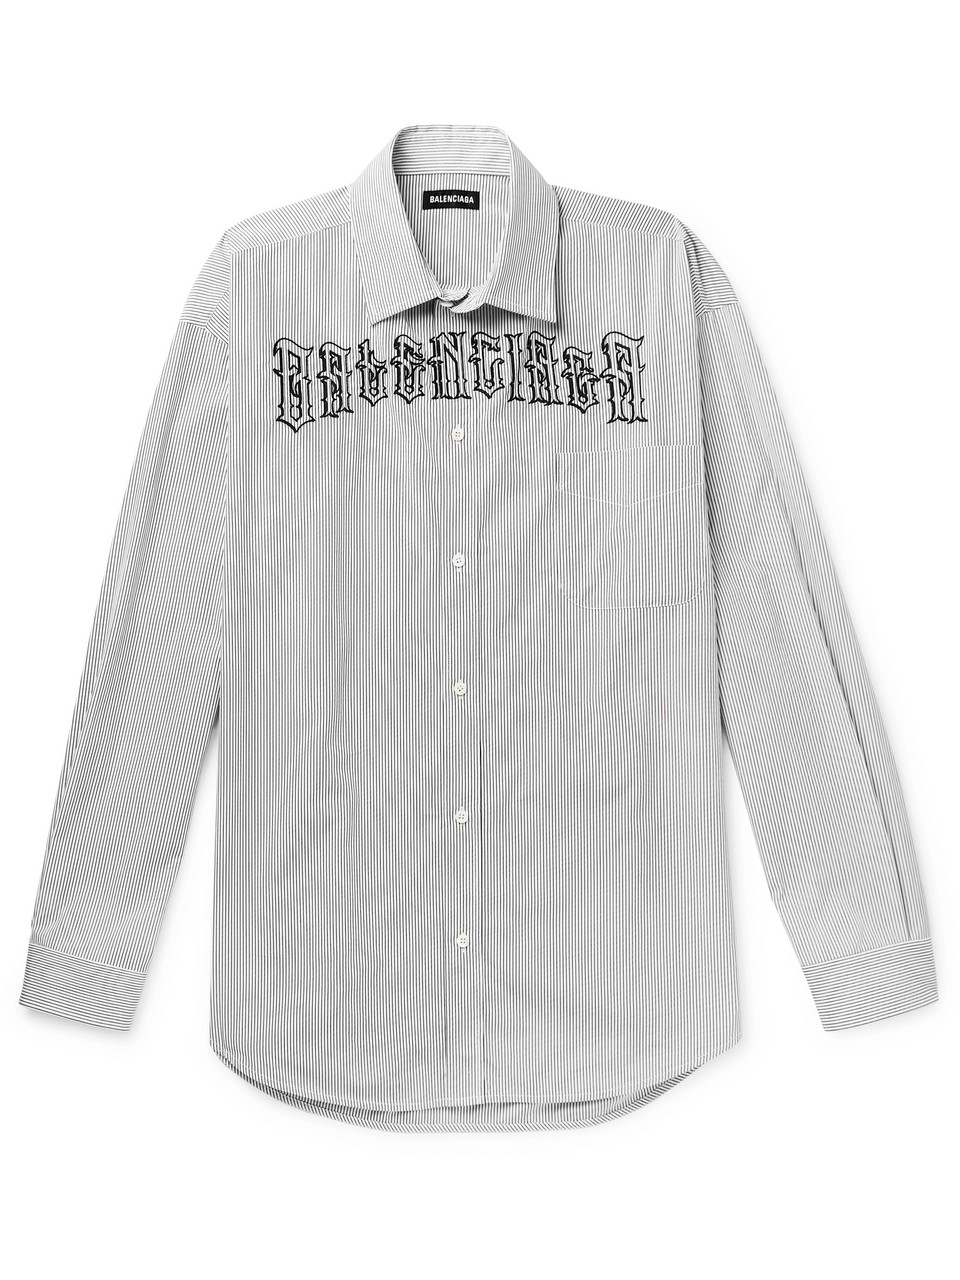 Balenciaga Logo-Embroidered Striped Cotton-Poplin Shirt